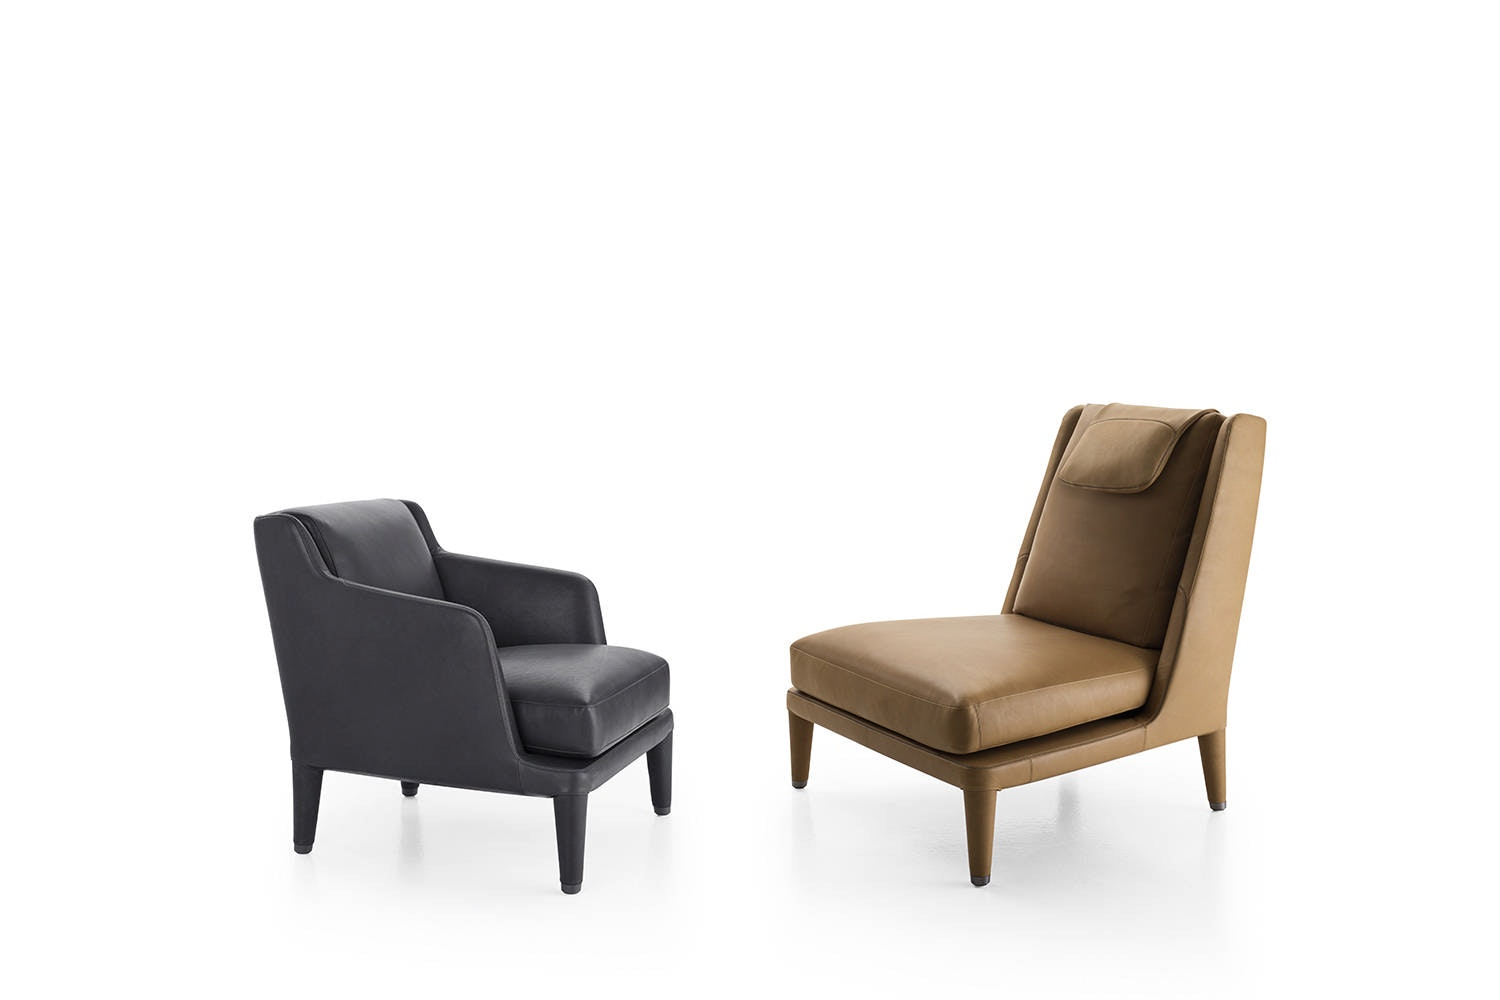 Nidus Armchair by Antonio Citterio for Maxalto